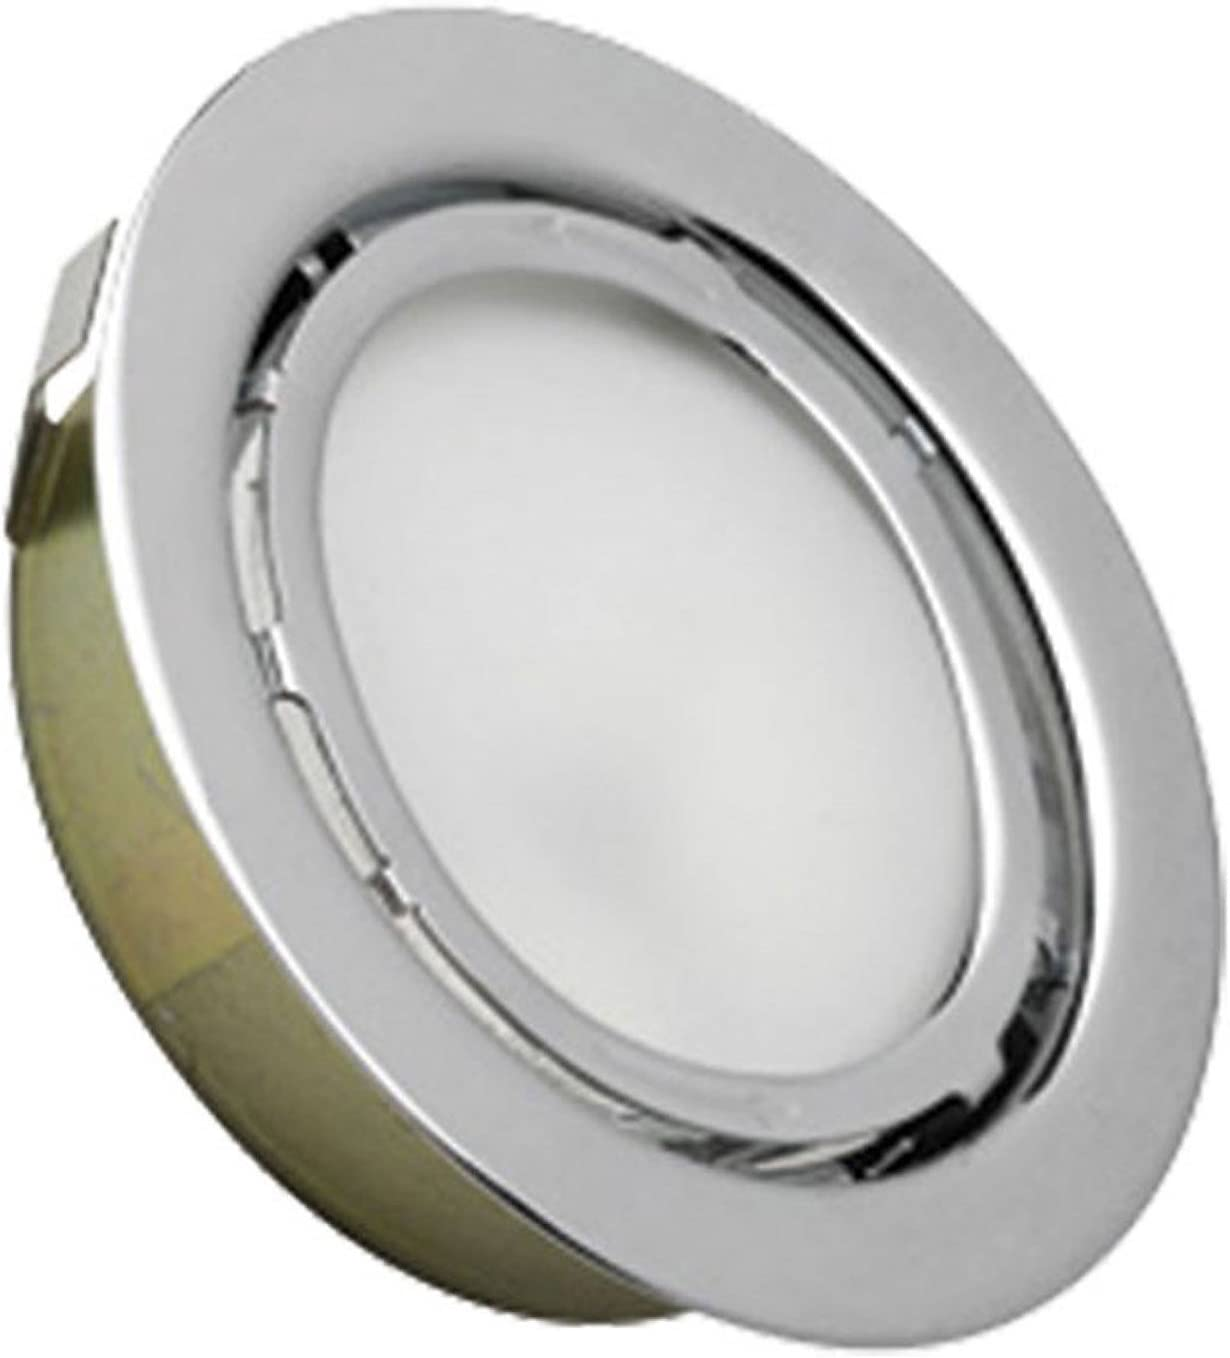 Alico Lighting MZ701-5-15 Flush Mount Light Chrome Finish with Frosted Glass Shades